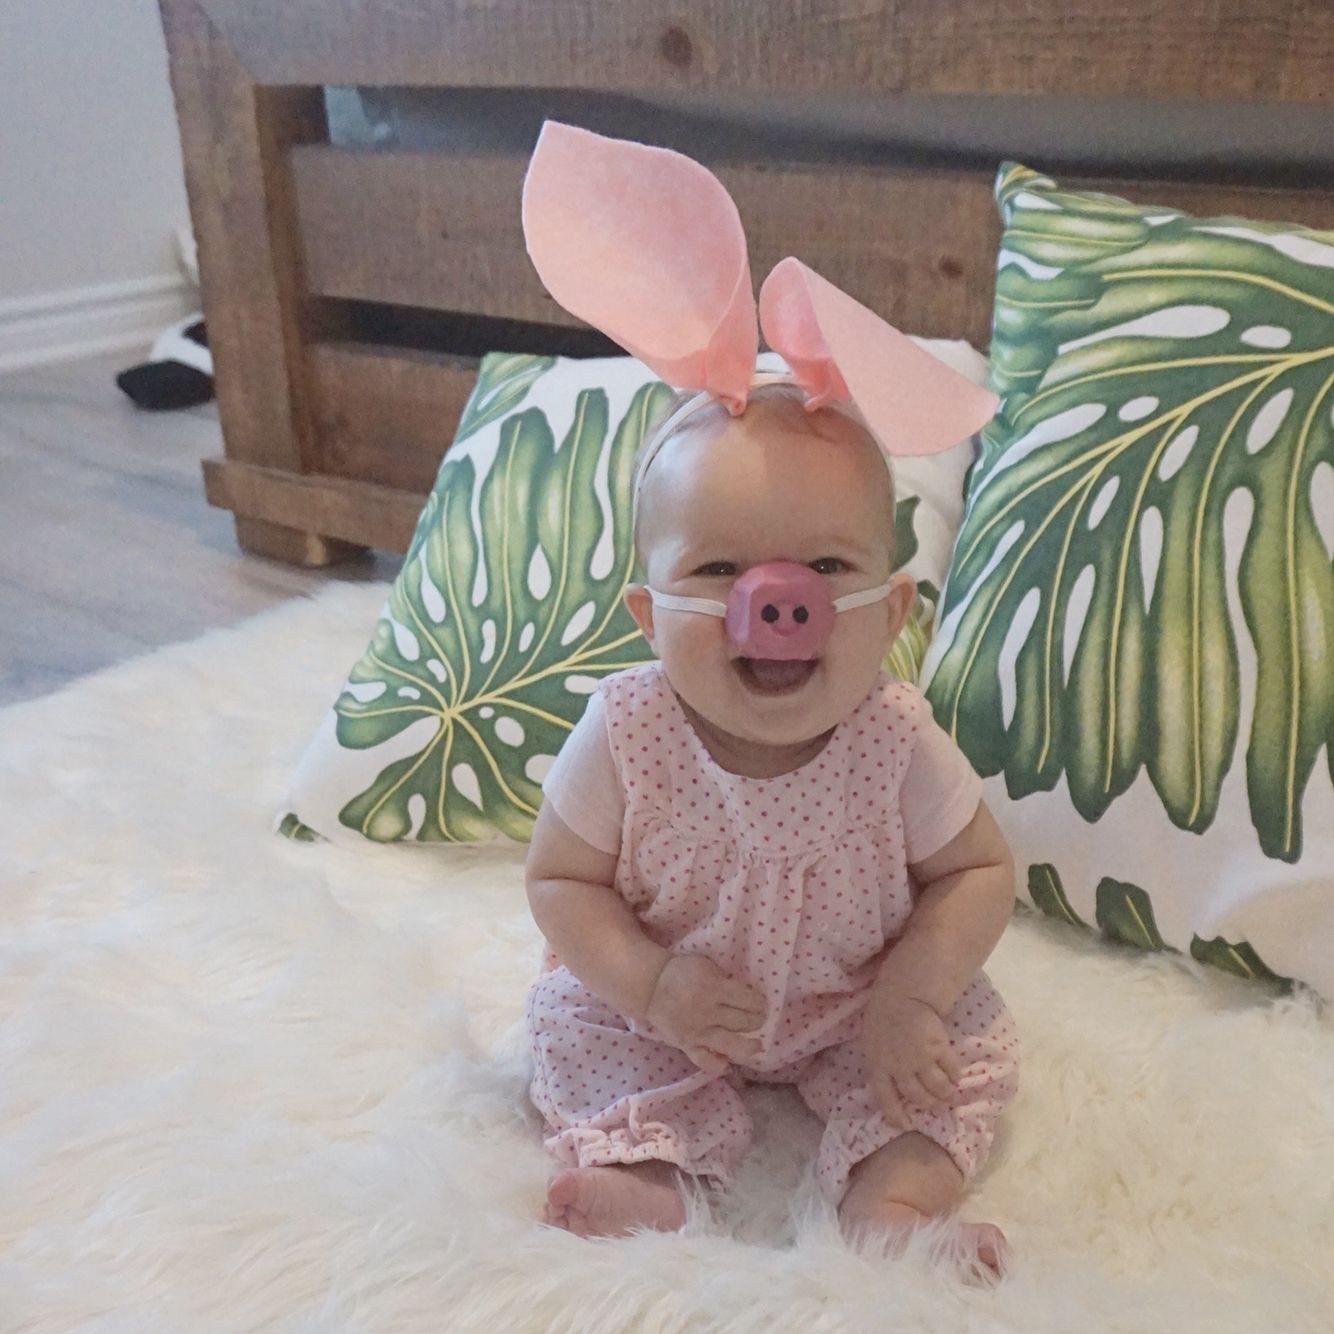 diy baby pig costume made from felt and an egg carton